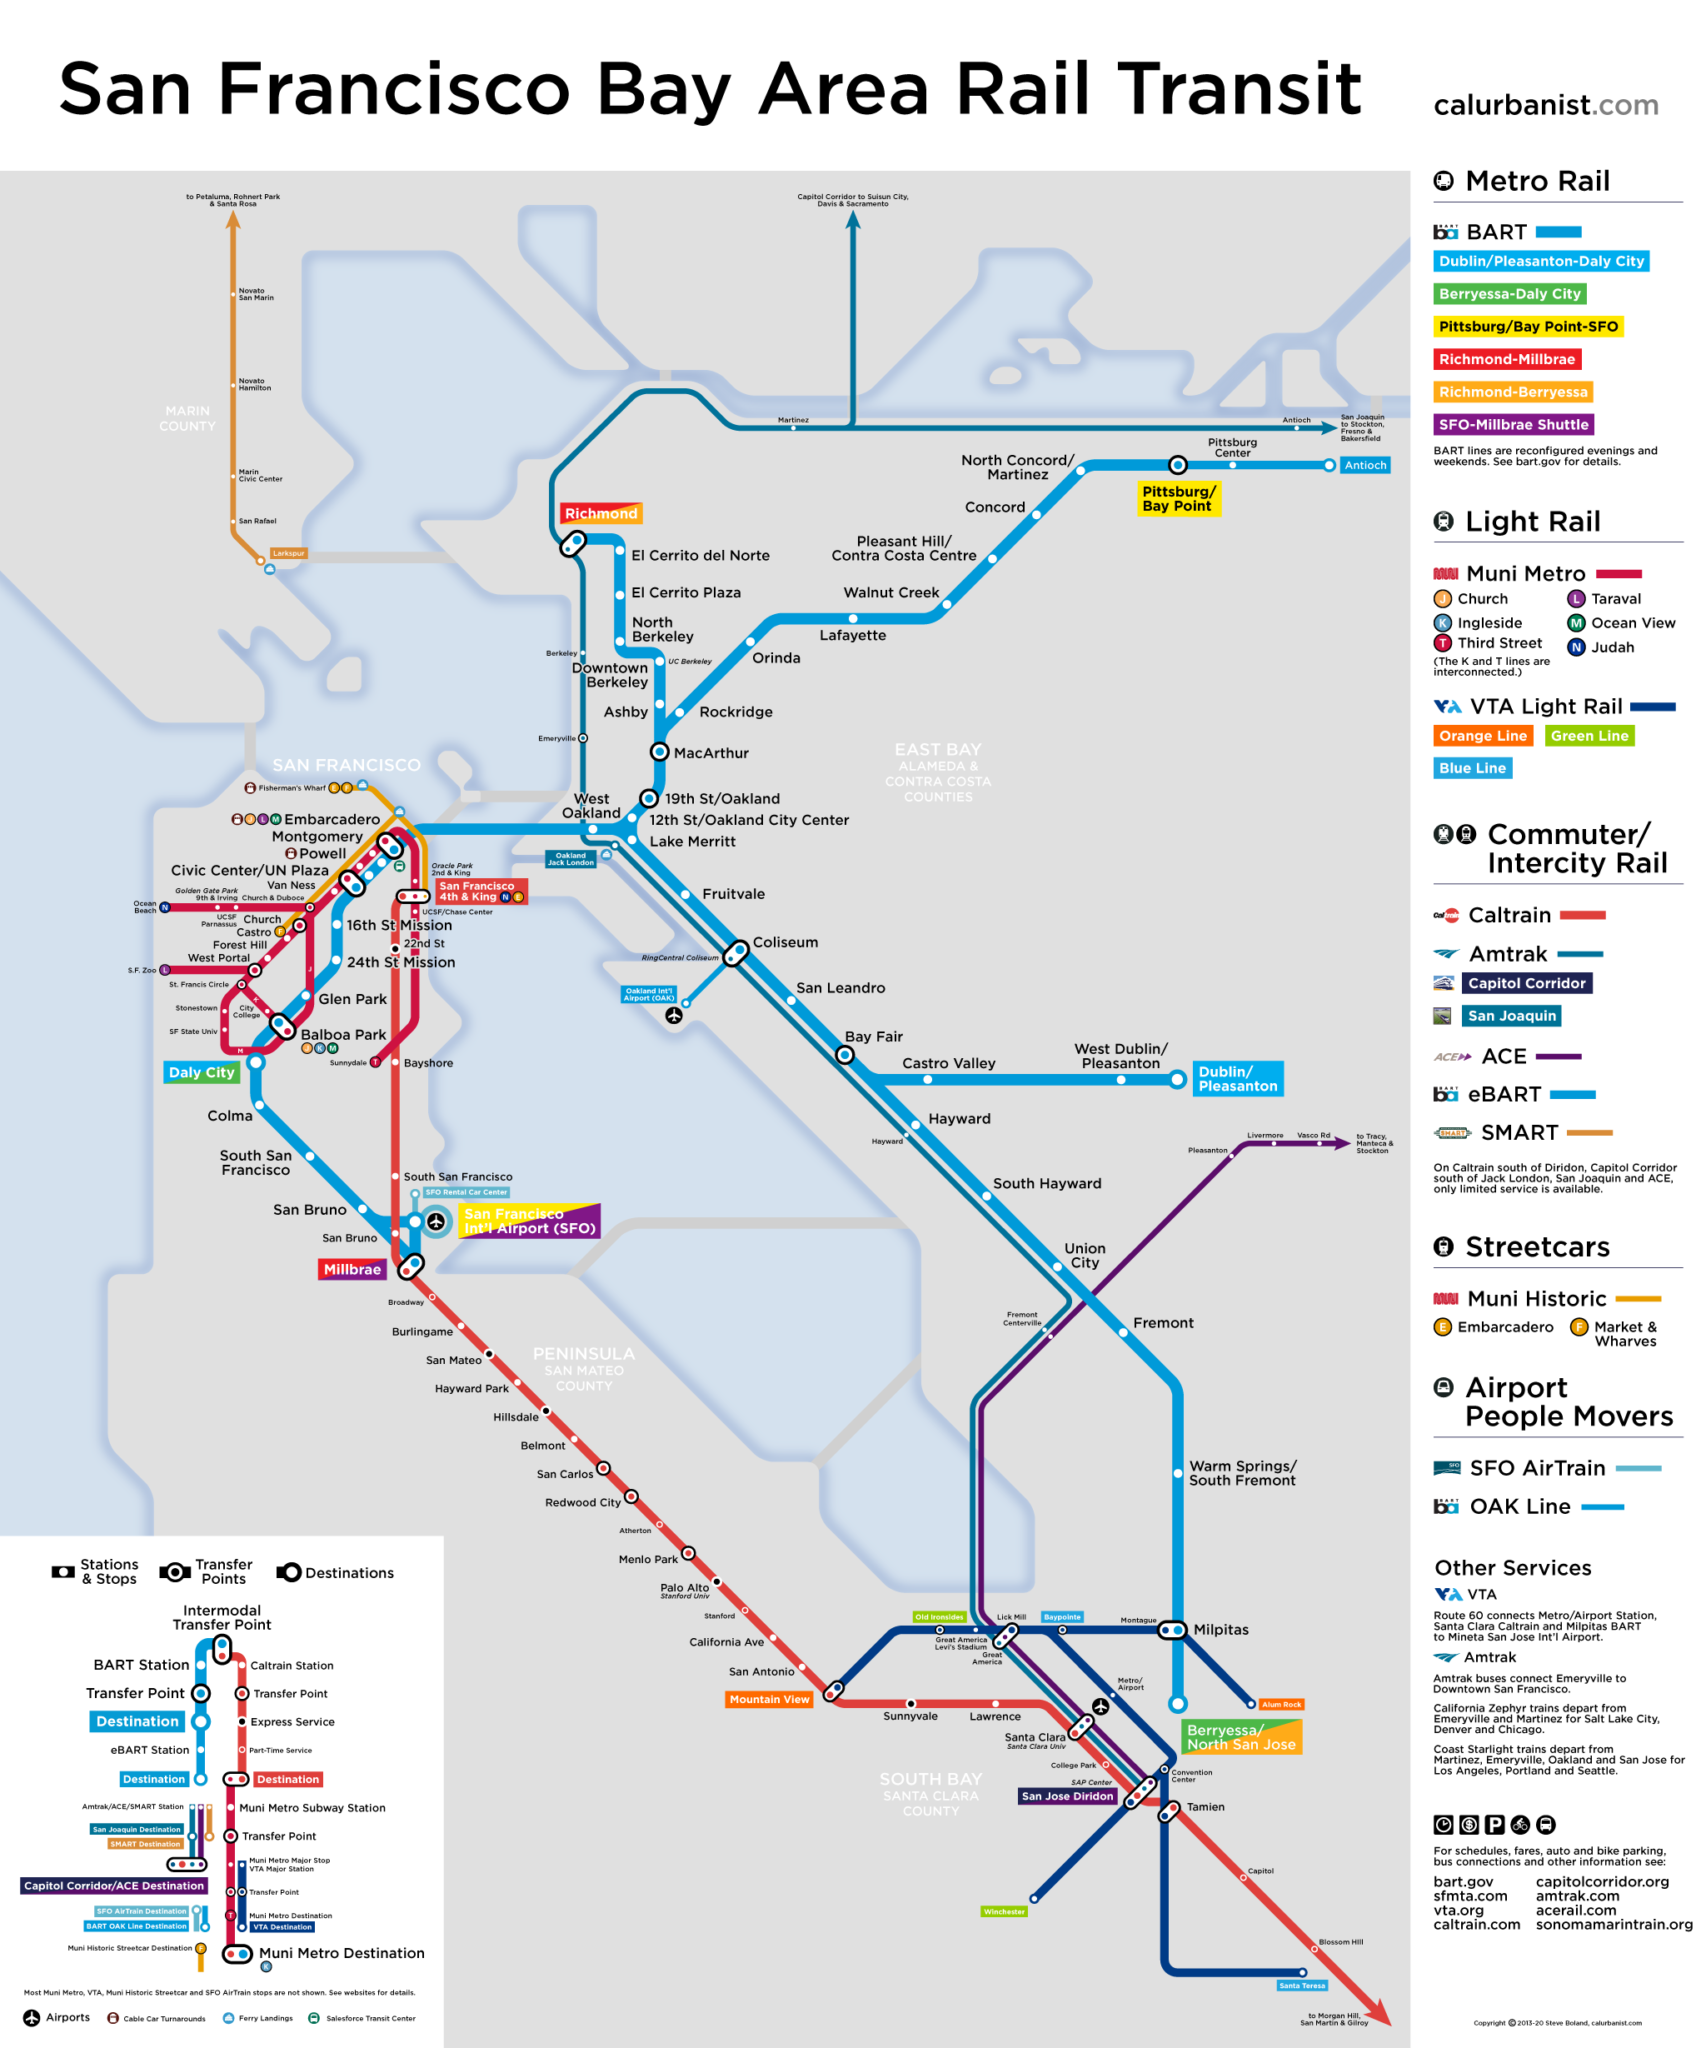 Dc Subway Map Pdf.Bay Area Rail Transit Maps Posters By Calurbanist